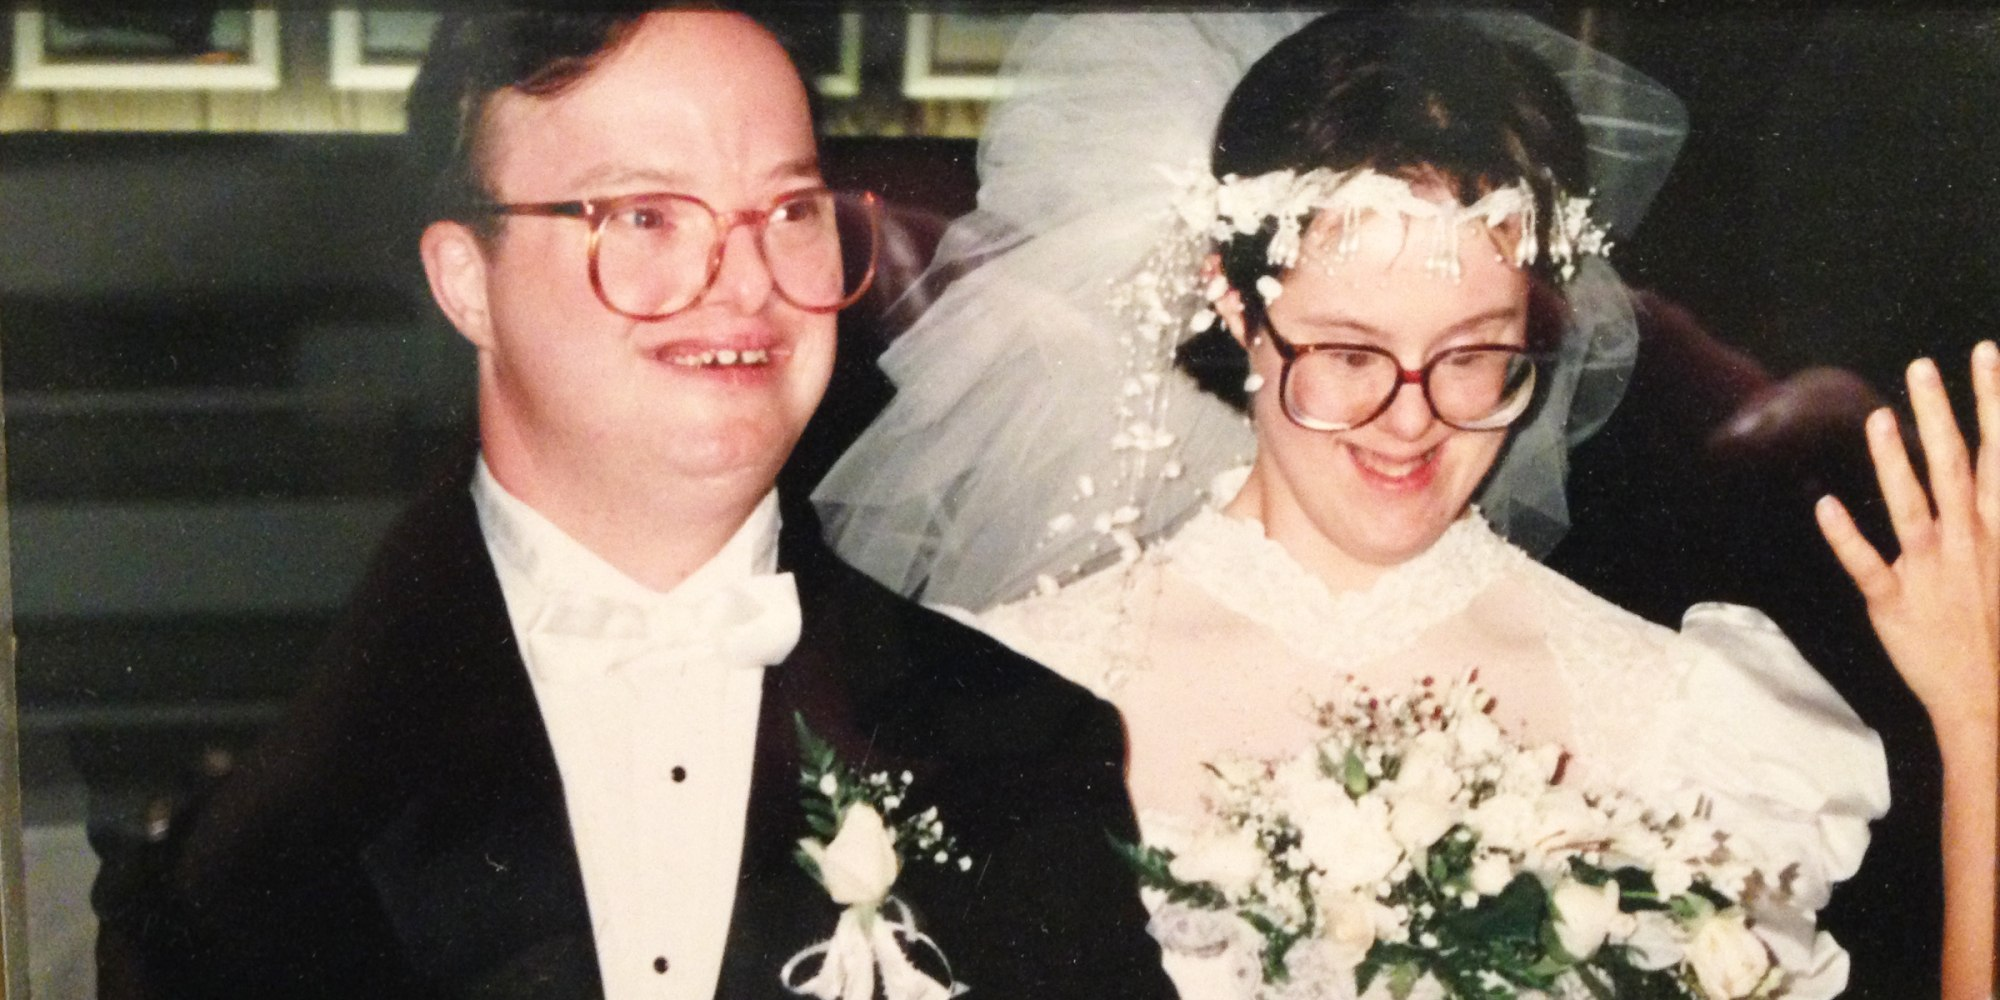 Paul Scharoun-DeForge and his wife Kris had the longest Down's syndrome marriage.